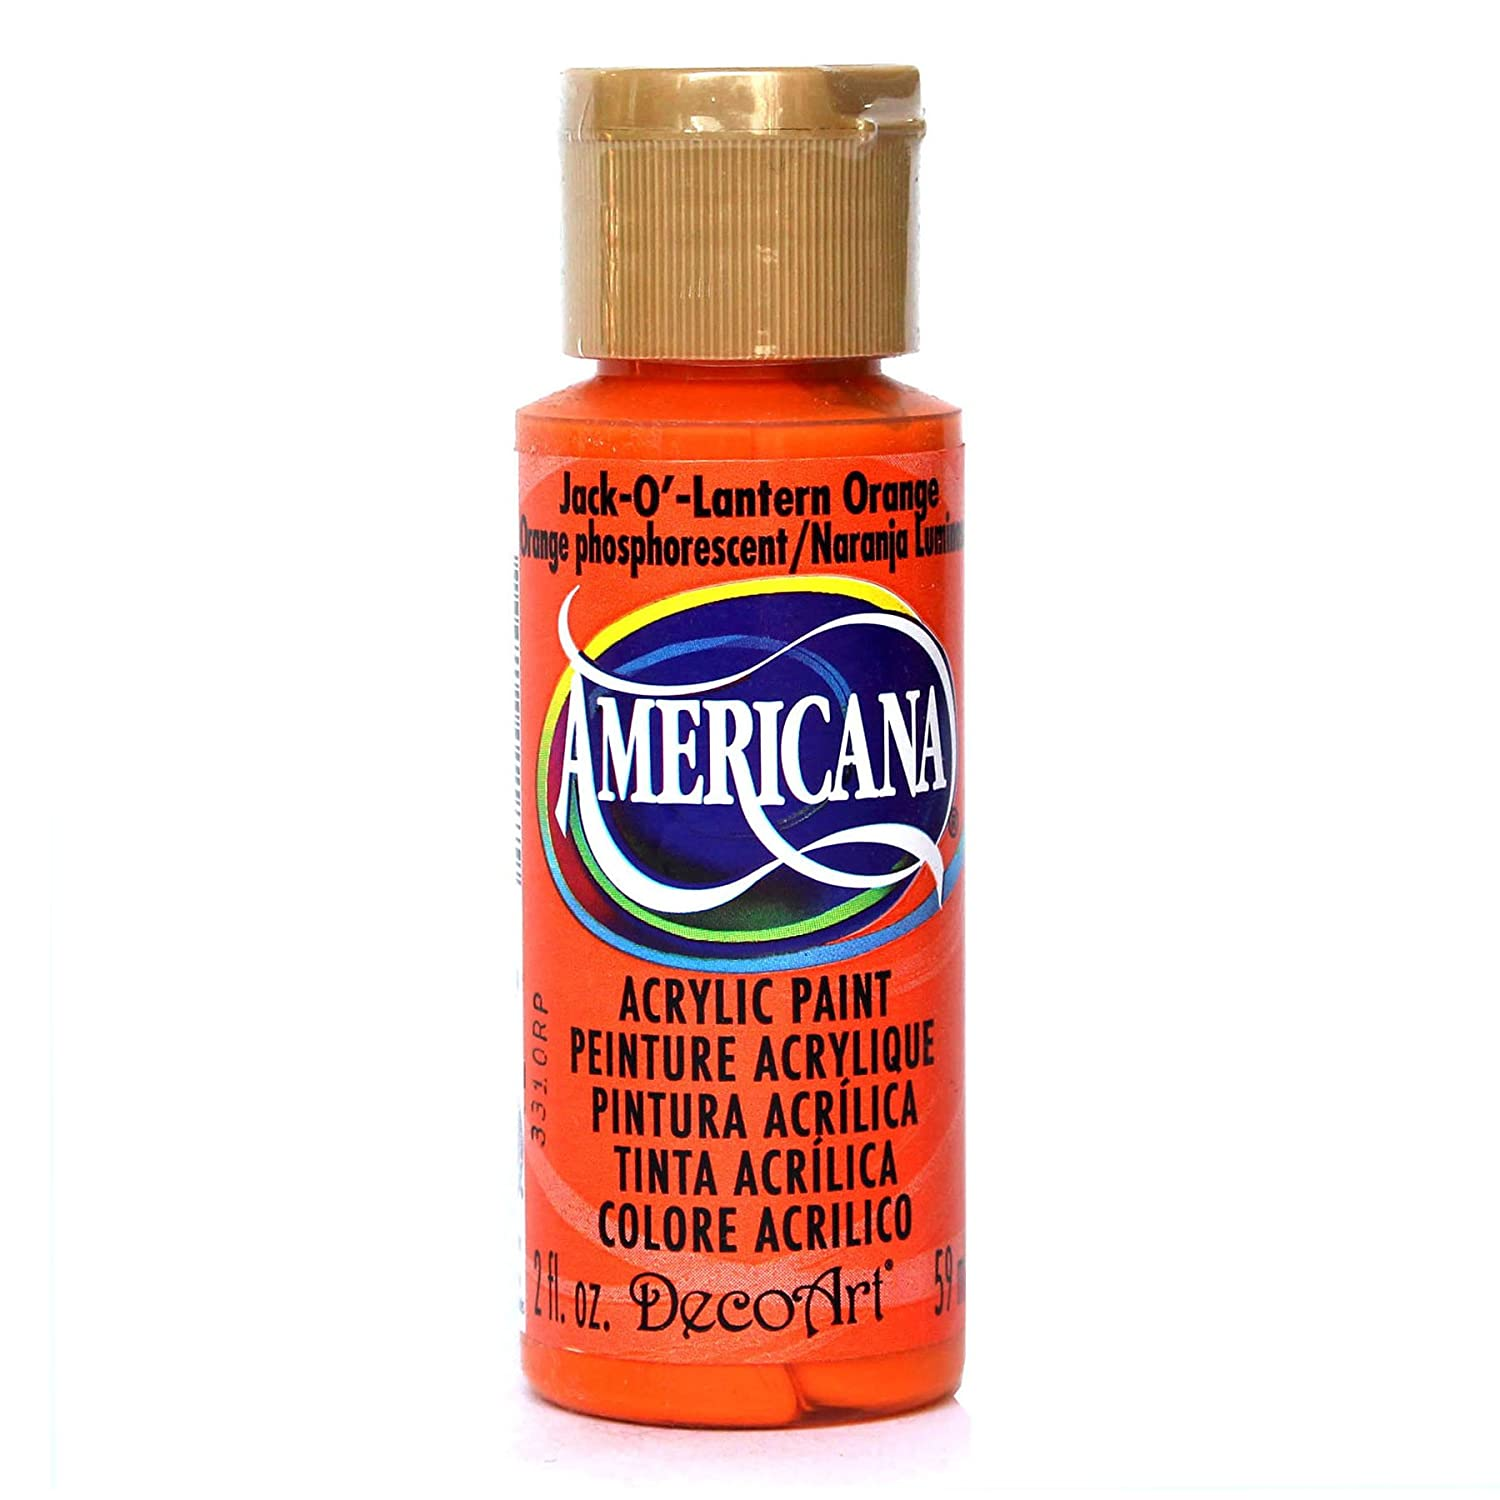 Deco Art Americana Acrylic Multi-Purpose Paint, Jack-O-Lantern Orange DecoArt DA229-3